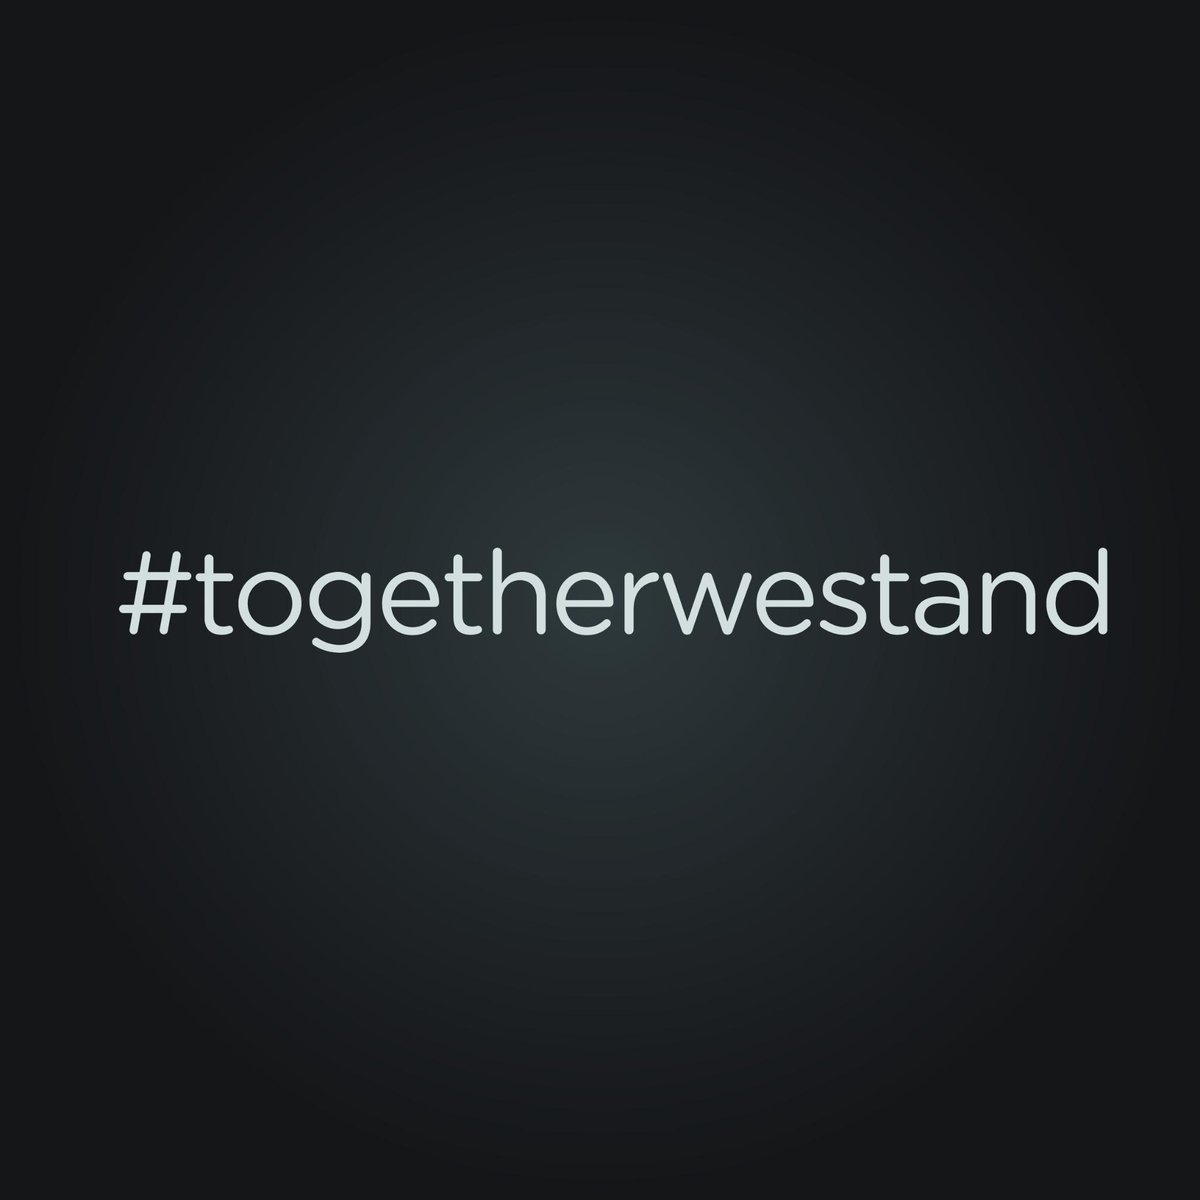 We are deeply saddened by the news of QZ8501. Heartfelt condolences to loved ones of those affected #togetherwestand http://t.co/gFHpYAJpAq